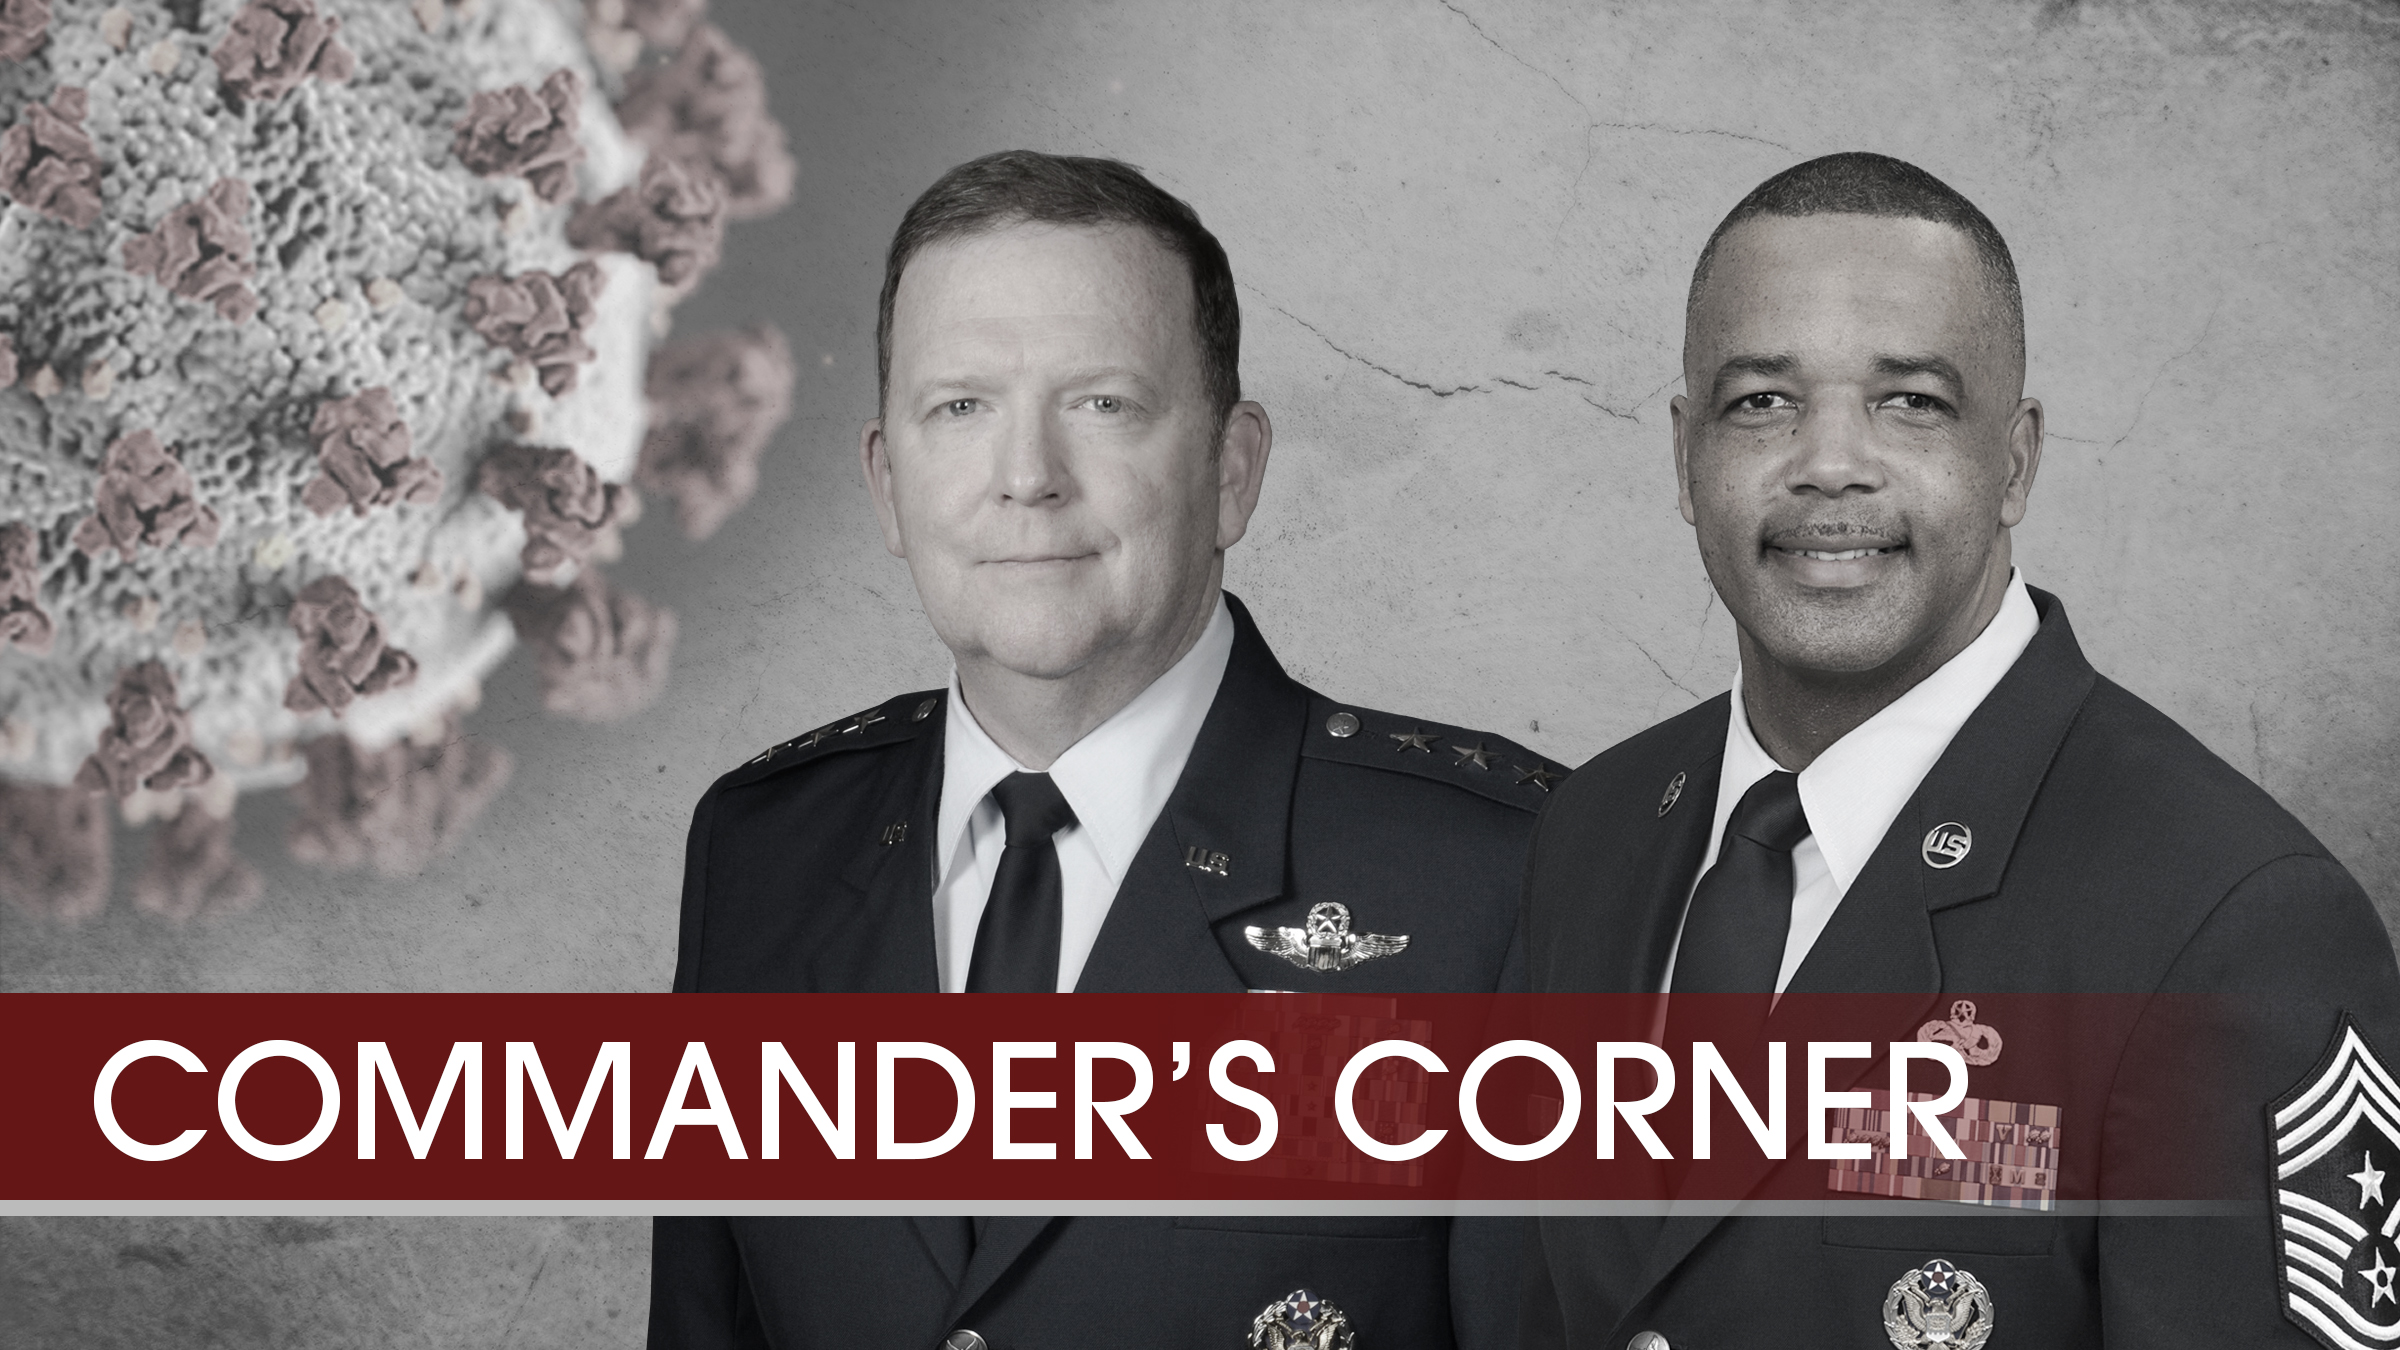 Commander's Corner Graphic